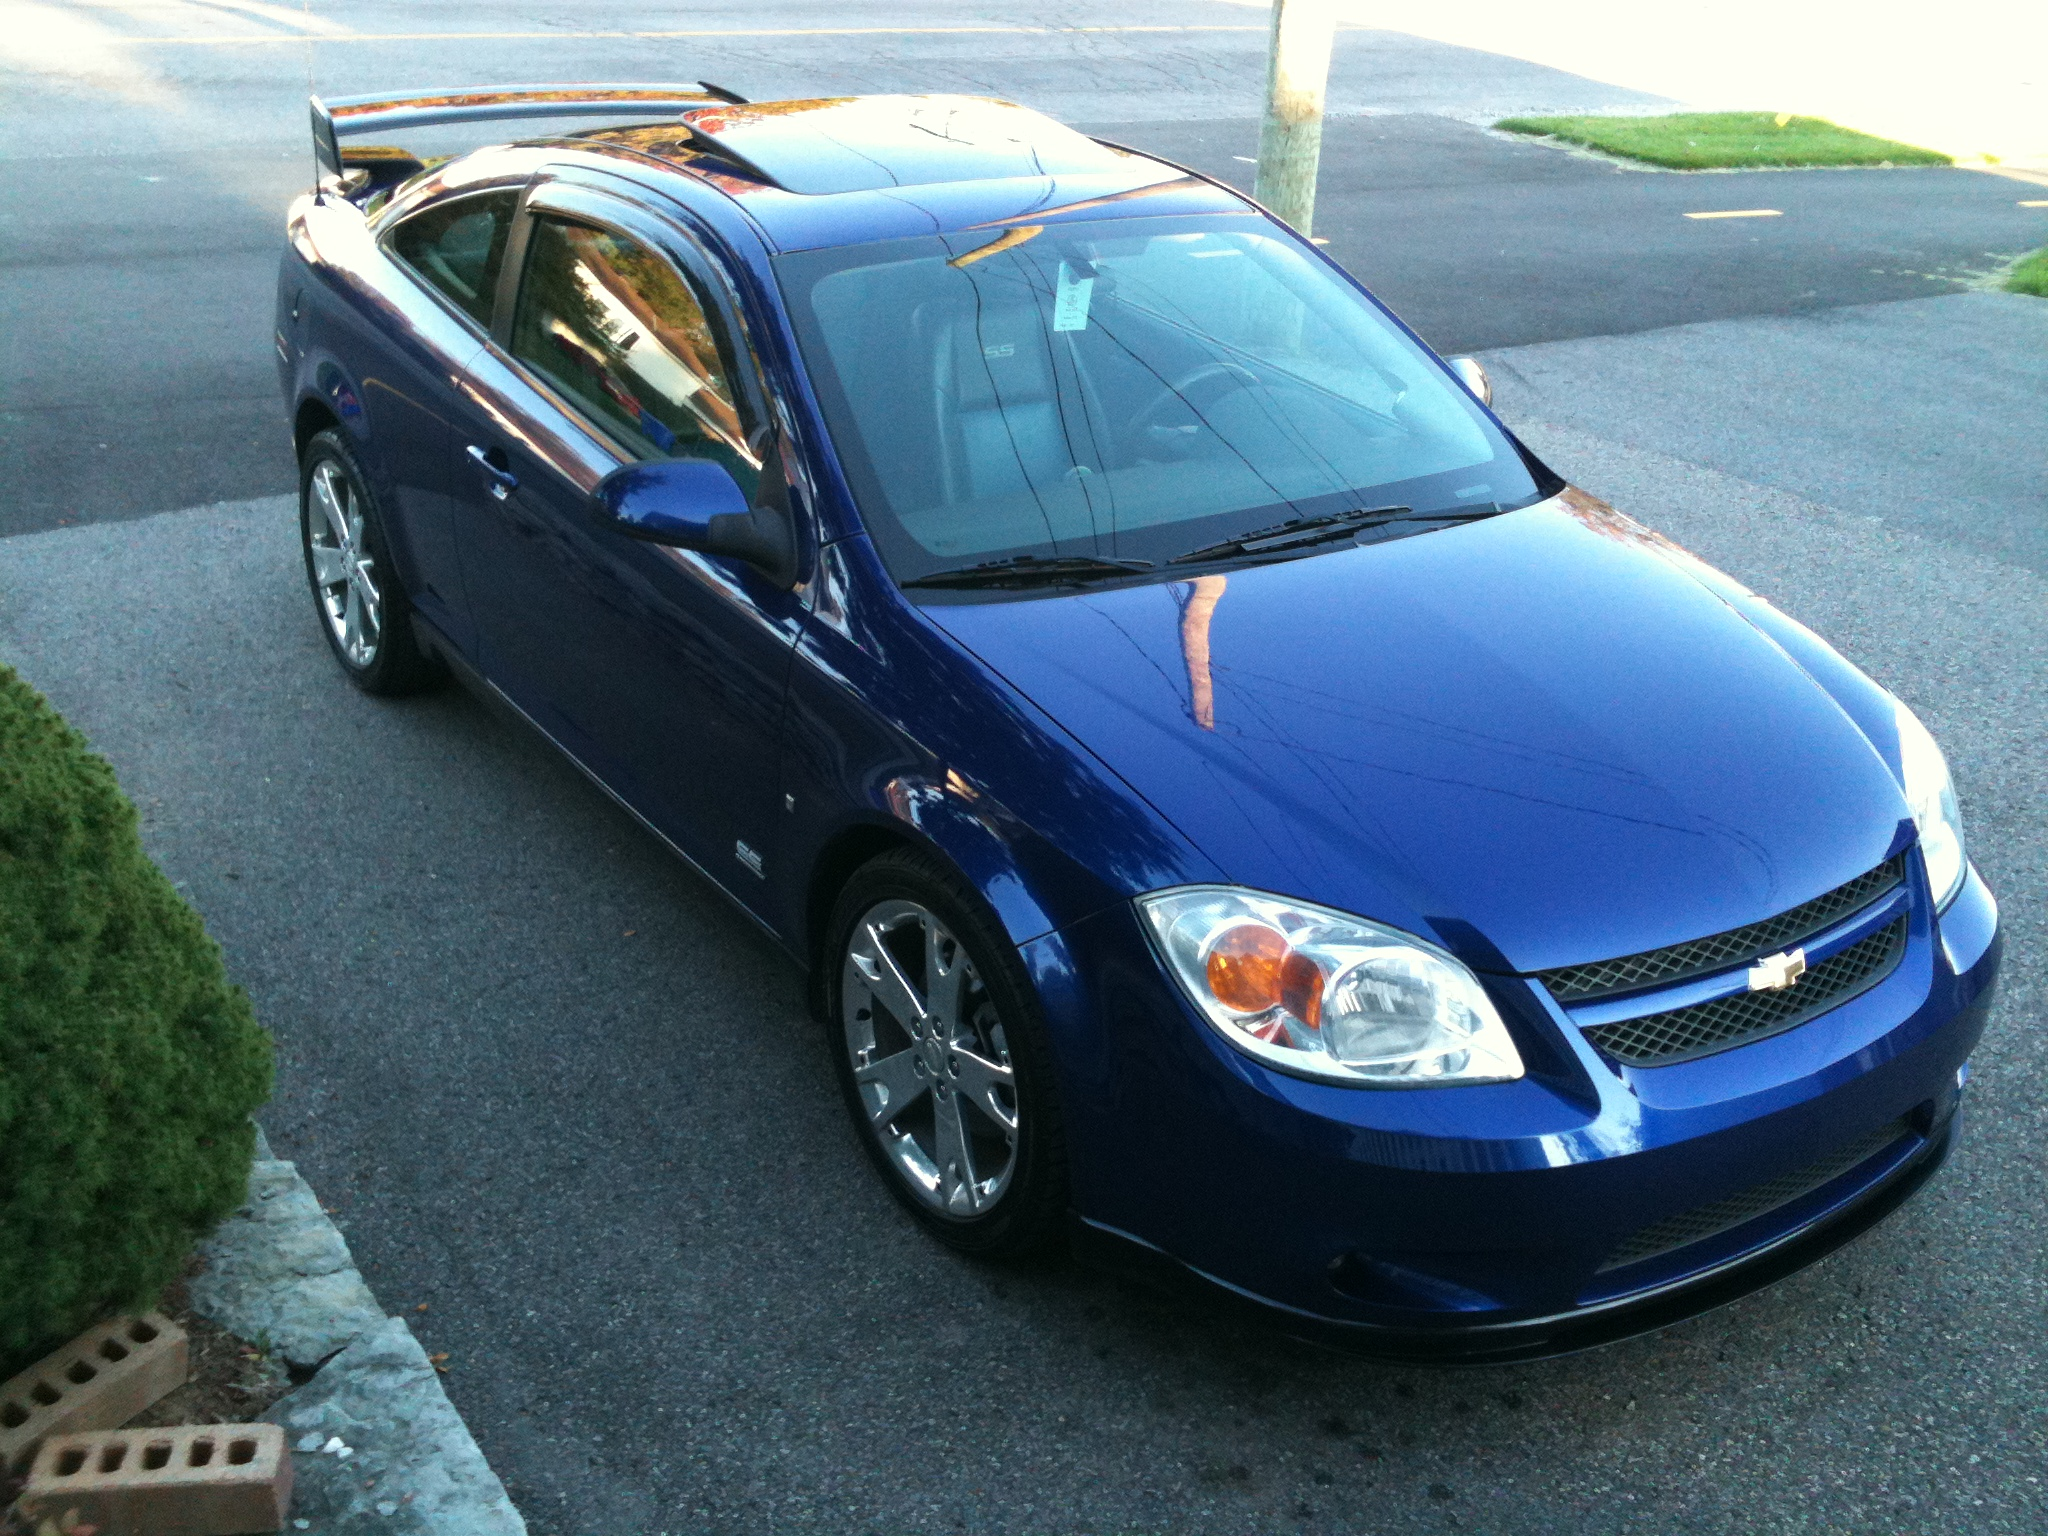 stock 2006 chevrolet cobalt ss s c 1 4 mile drag racing. Black Bedroom Furniture Sets. Home Design Ideas